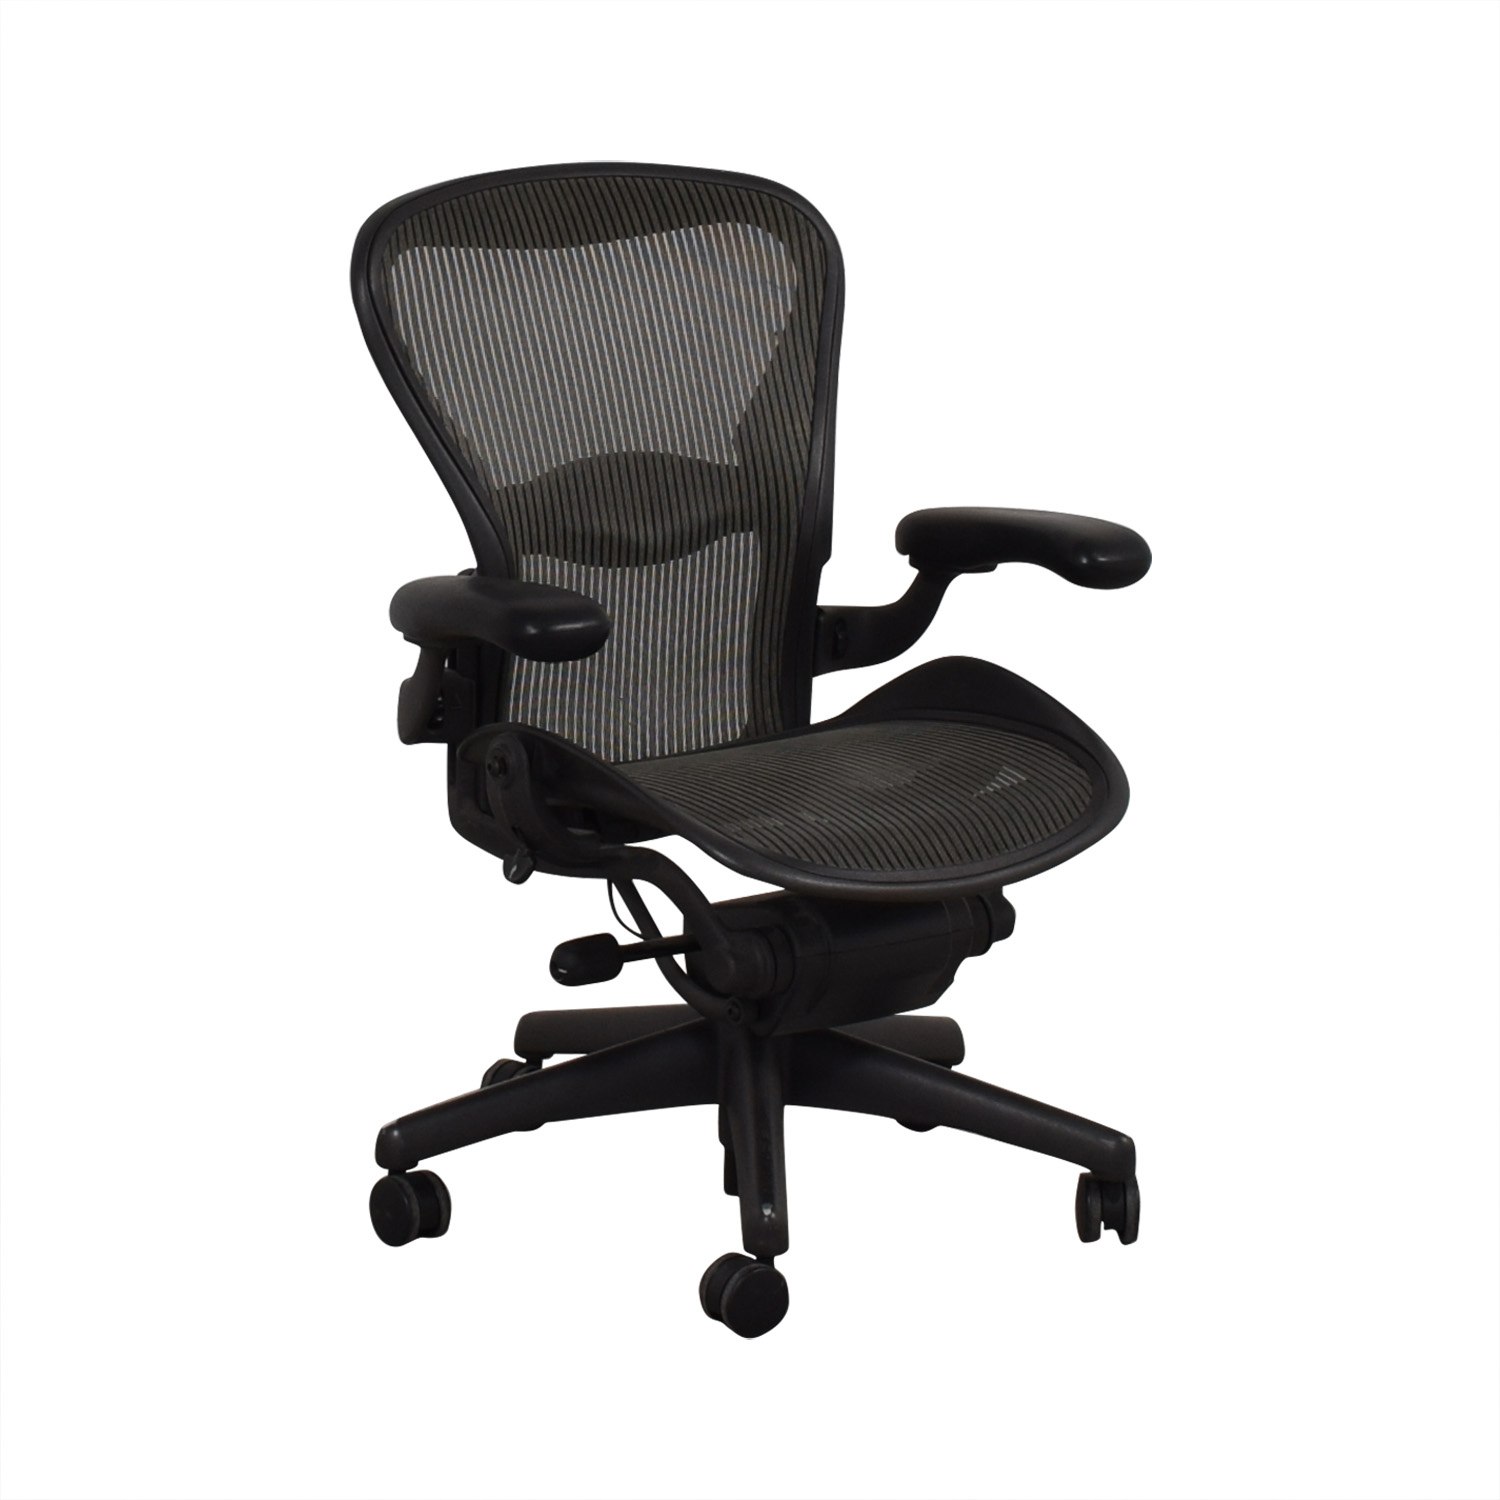 Groovy 75 Off Herman Miller Herman Miller Aeron Black Office Chair Chairs Caraccident5 Cool Chair Designs And Ideas Caraccident5Info